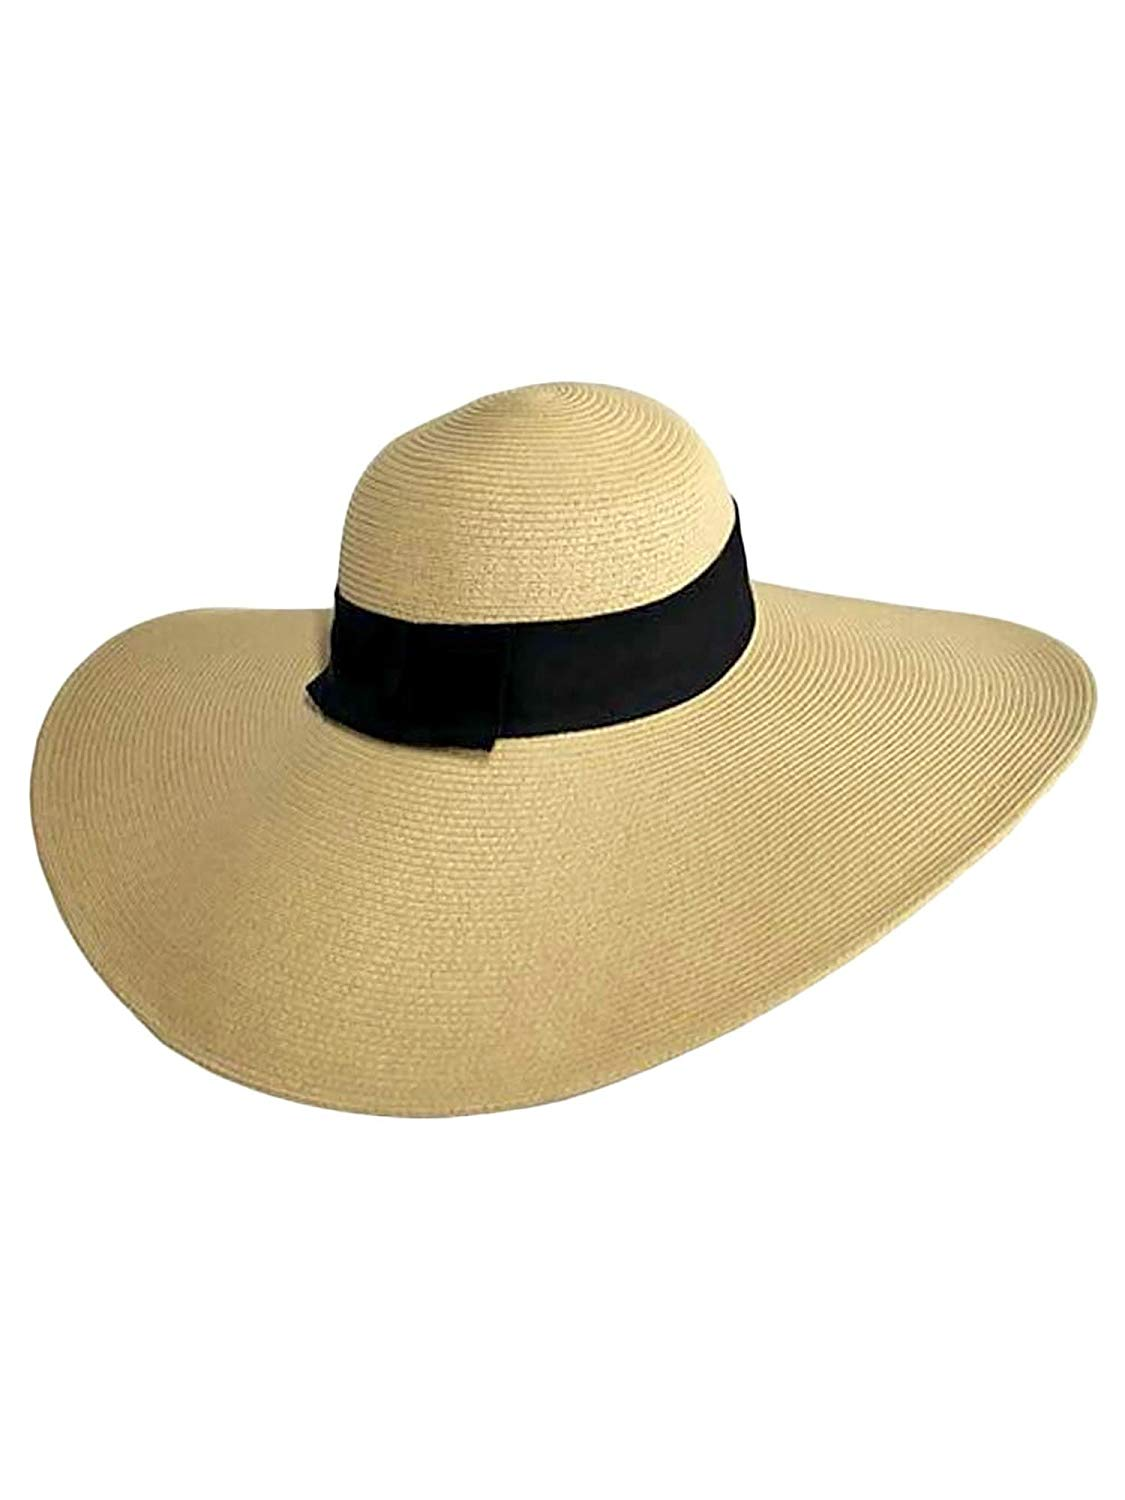 80d55bfe Get Quotations · Luxury Divas Tan Wide Brimmed Floppy Hat With Black Ribbon  Hat Band